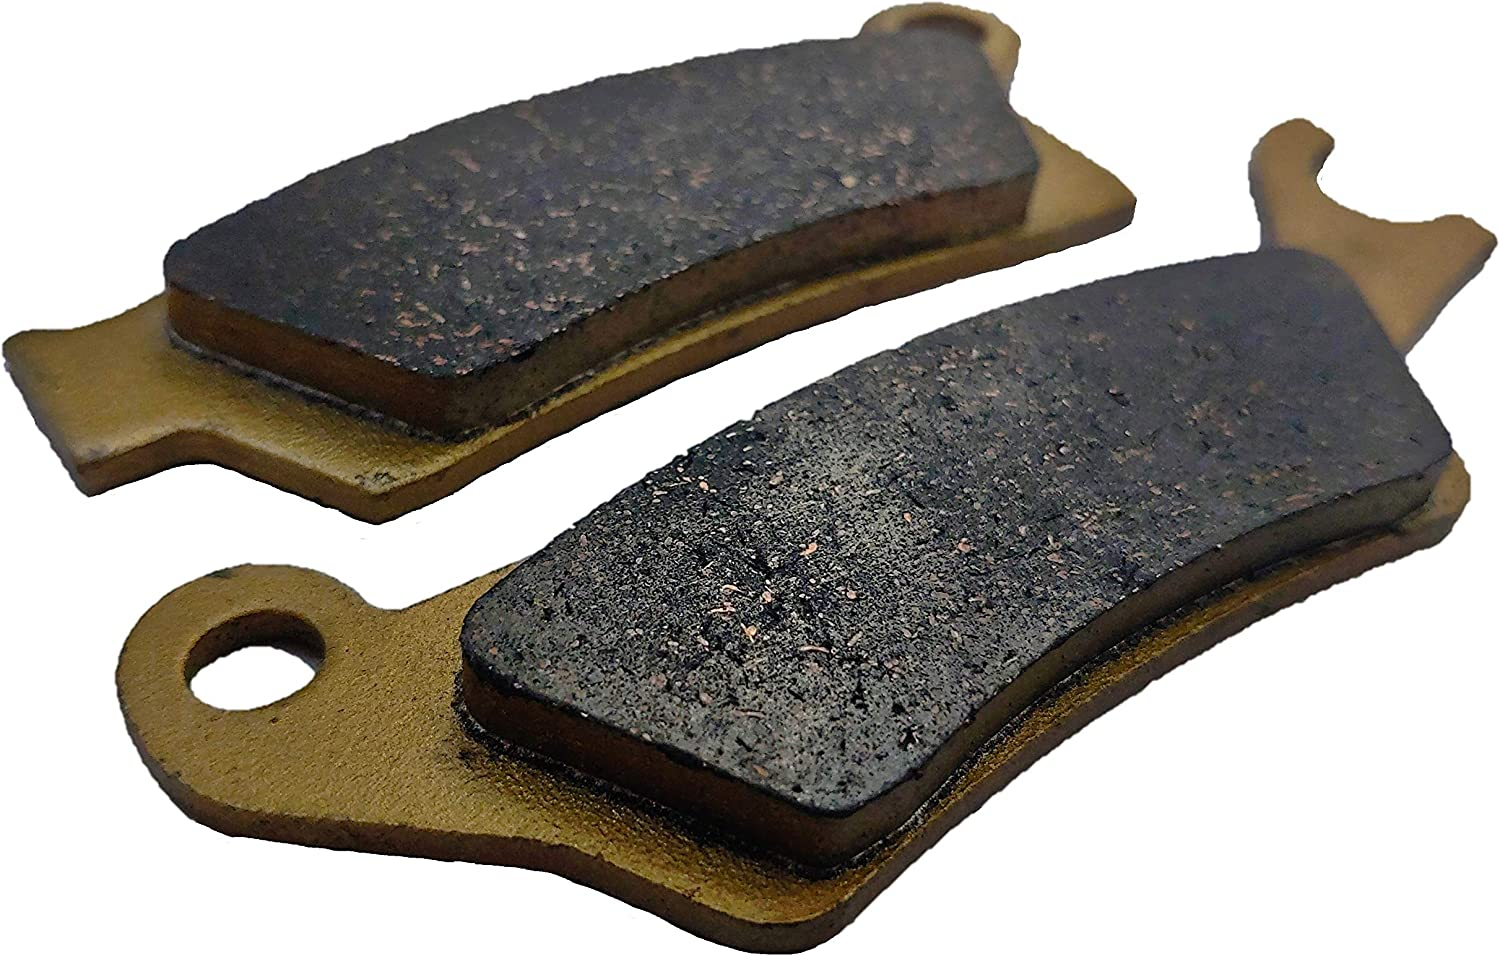 Volar Front /& Rear Brake Pads for 2016-2017 CAN AM Renegade 850 4x4